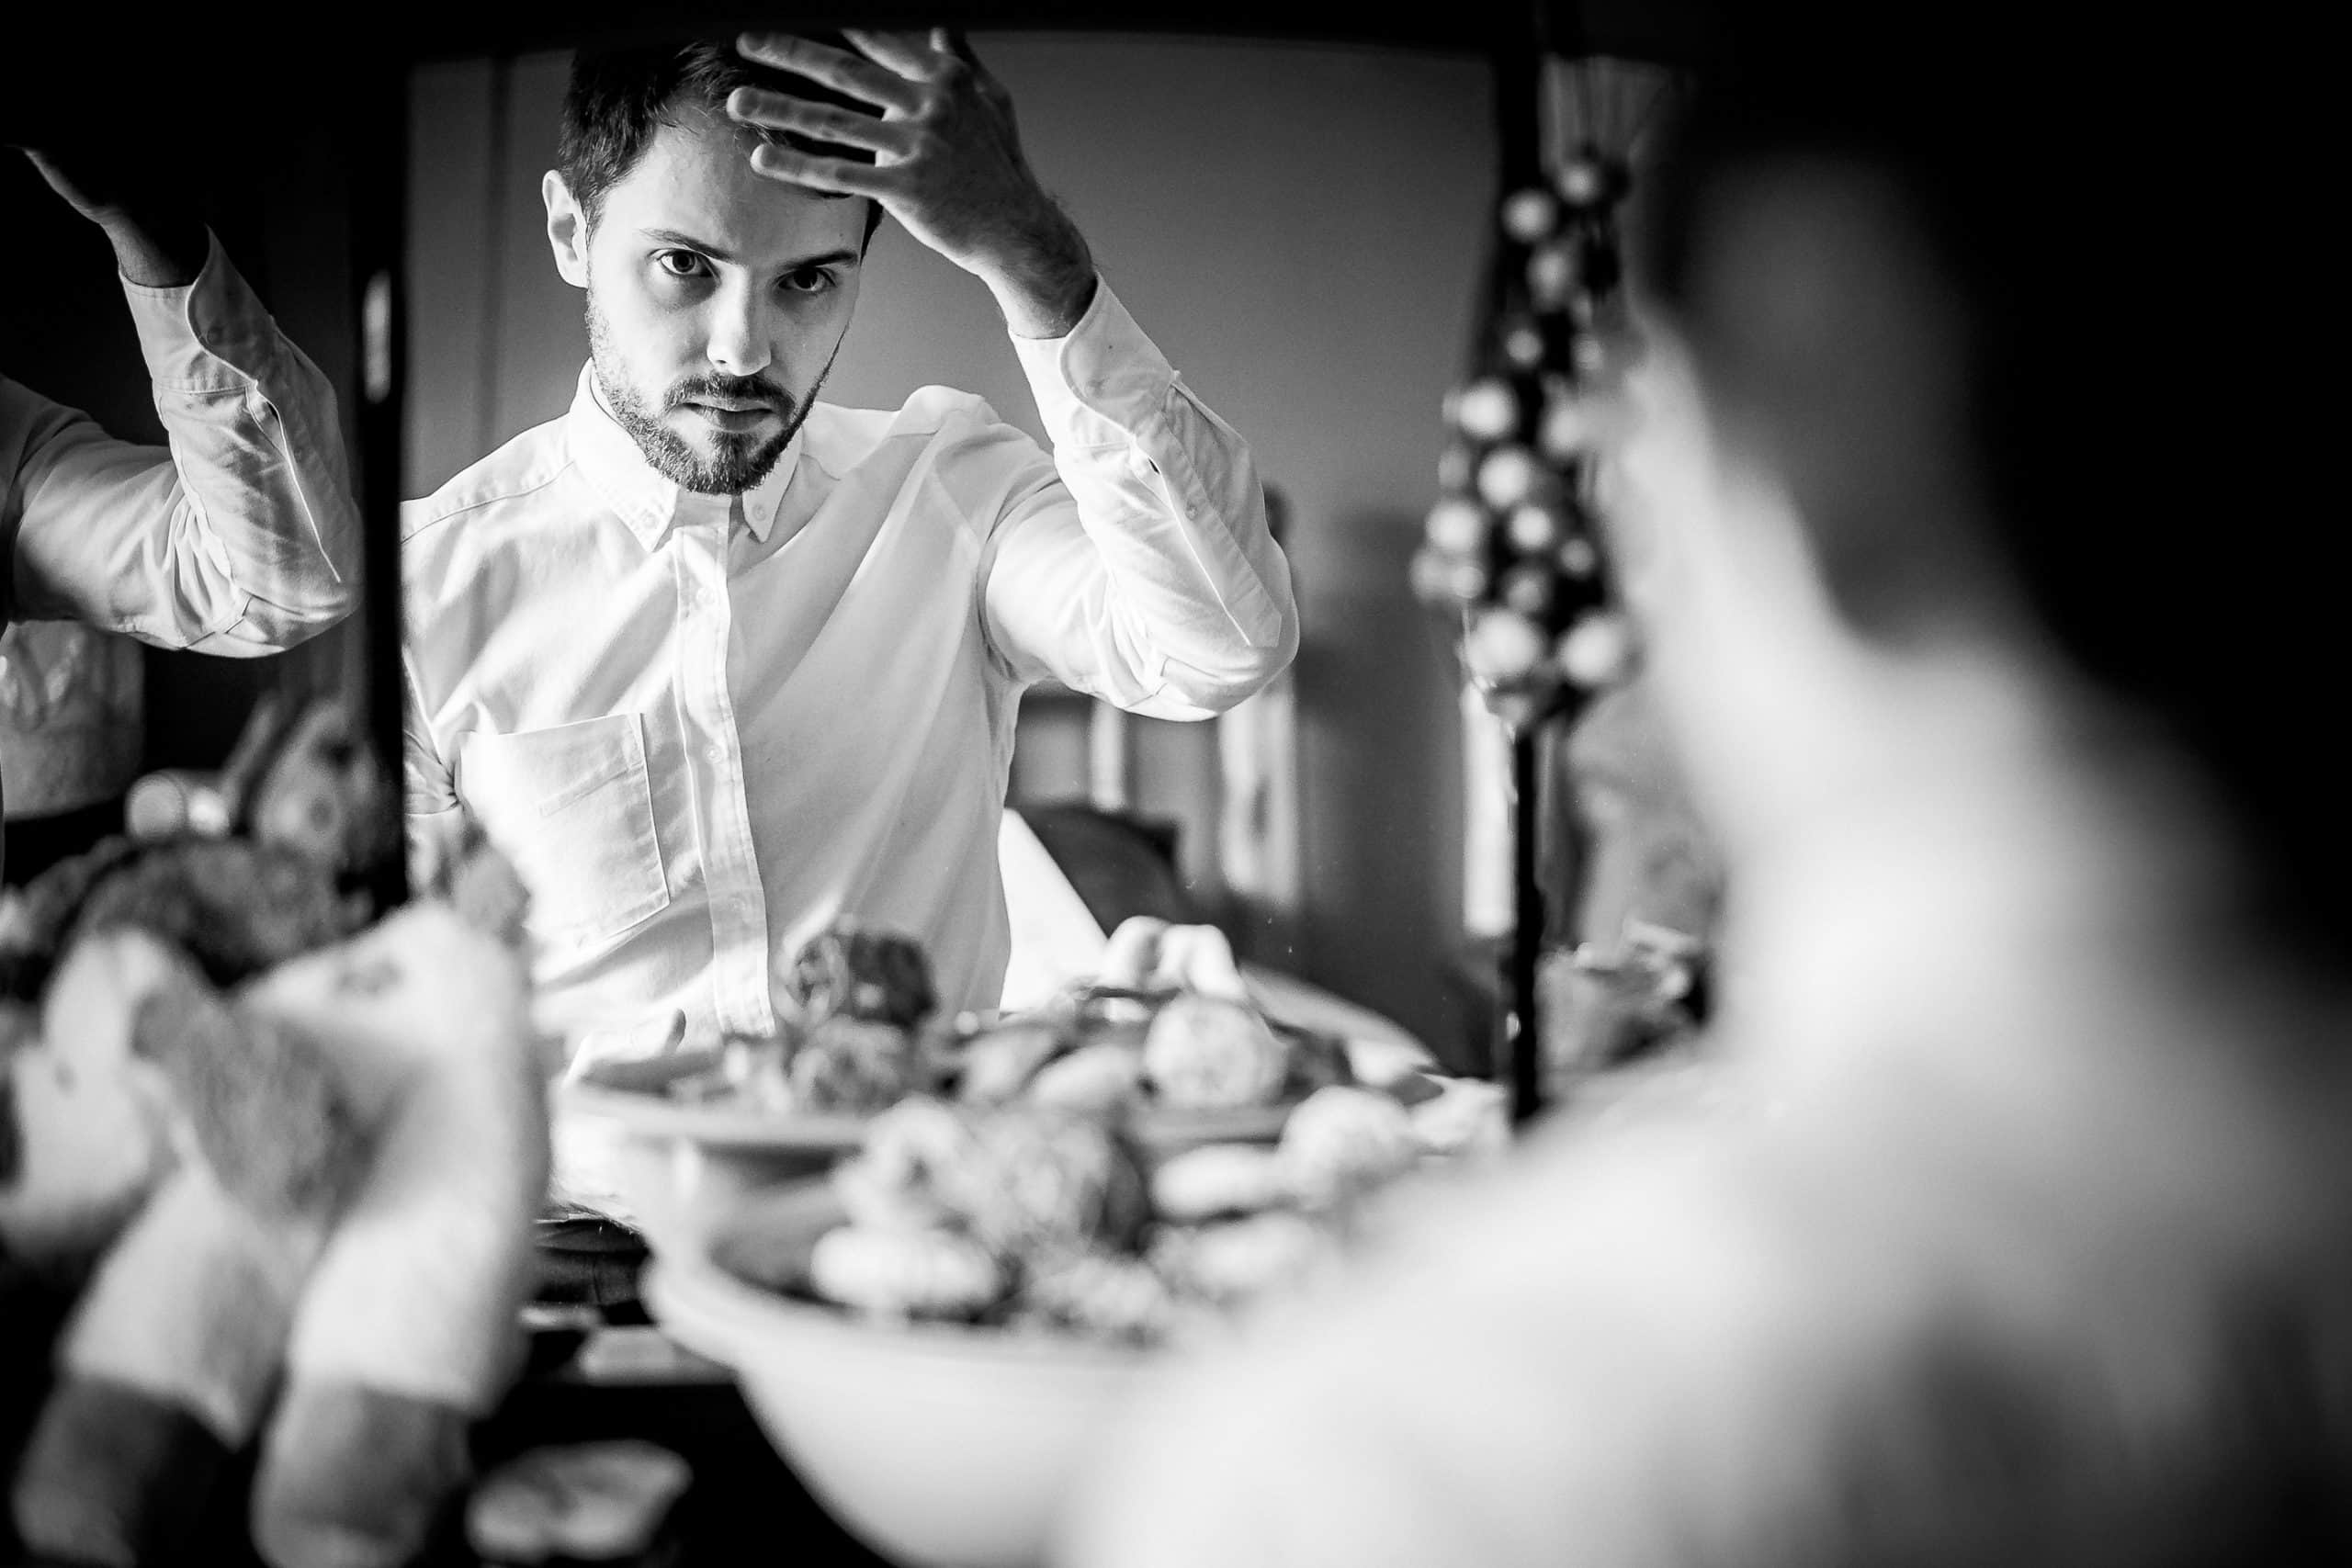 Refelection of groom in mirror